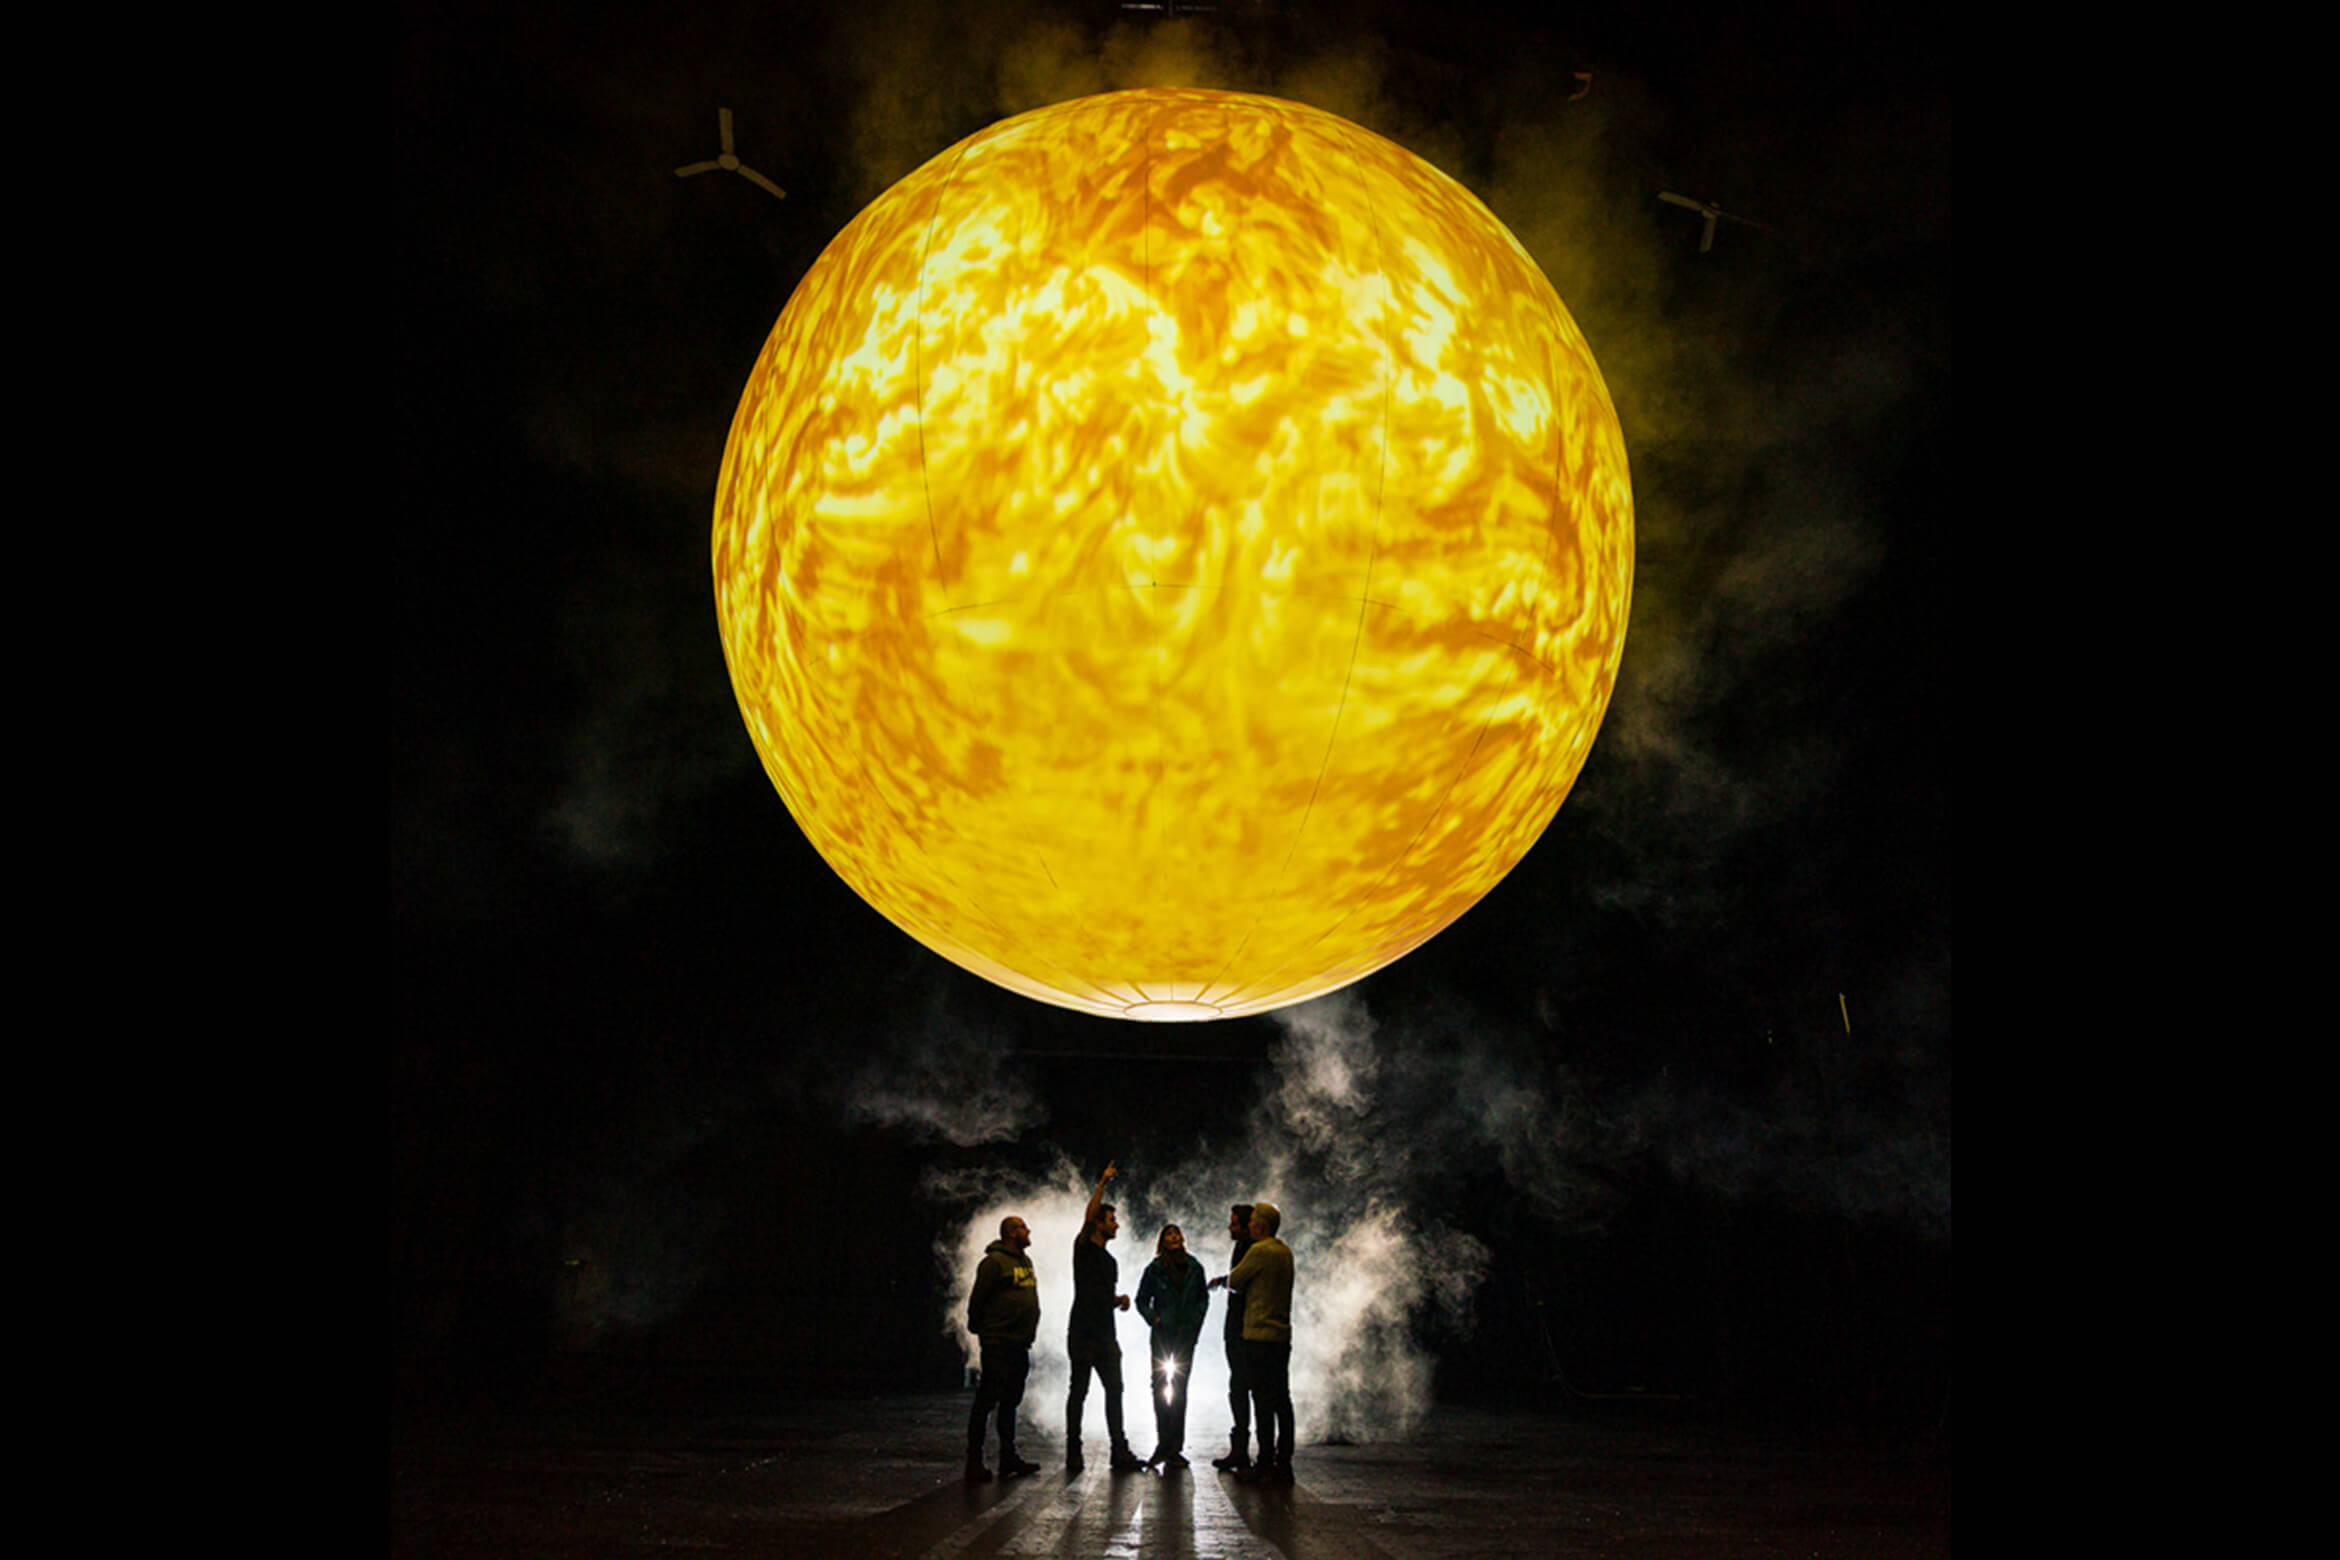 Photograph of SUN with a group of people below